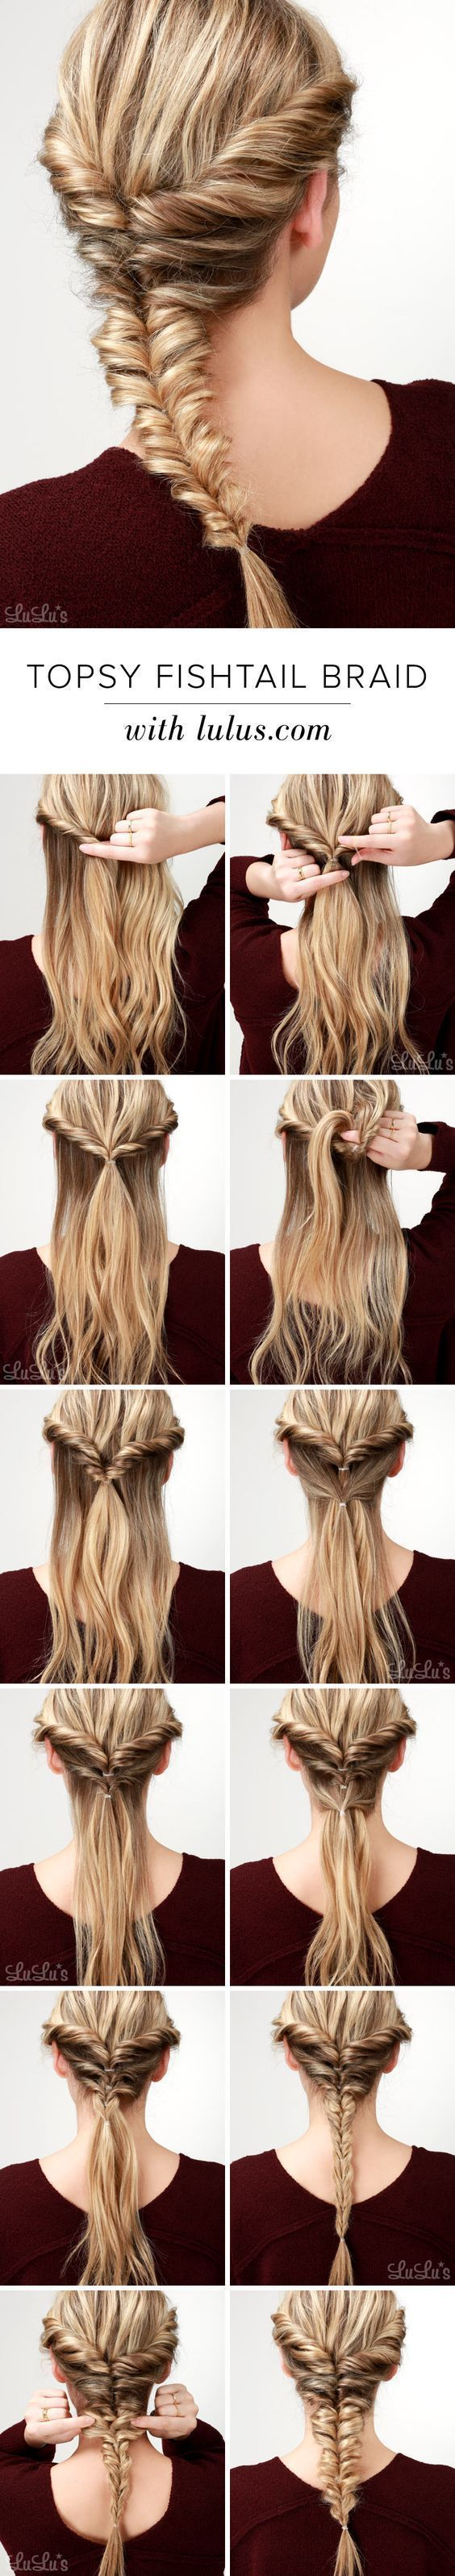 [tps_header]Is a braided crown hairstyle a look you want to try? Do you think a perfect braided crown hairstyle is too difficult for you to do on your own? With